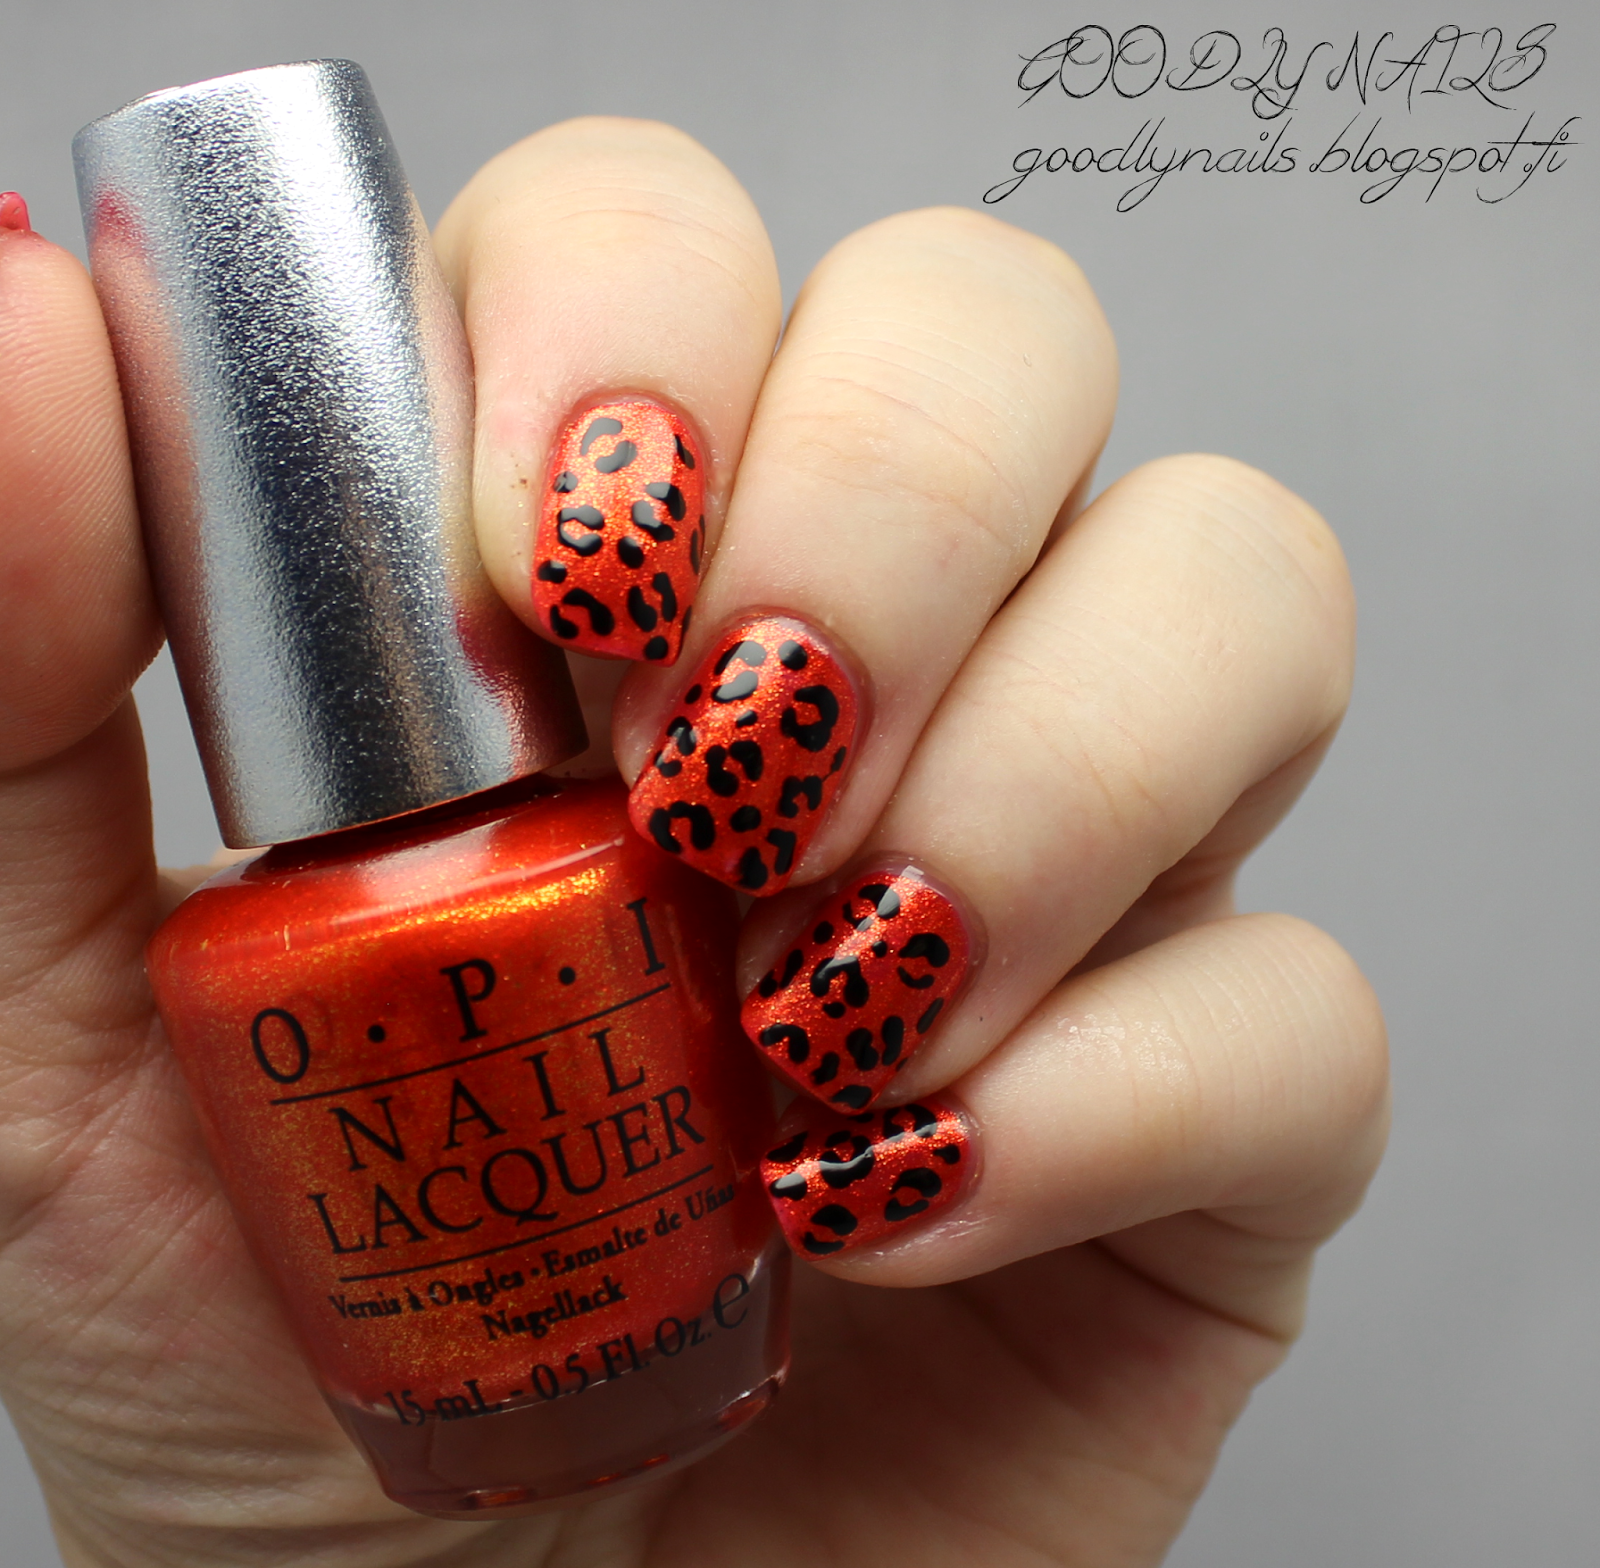 Goodly Nails: OPI Ds Luxurious